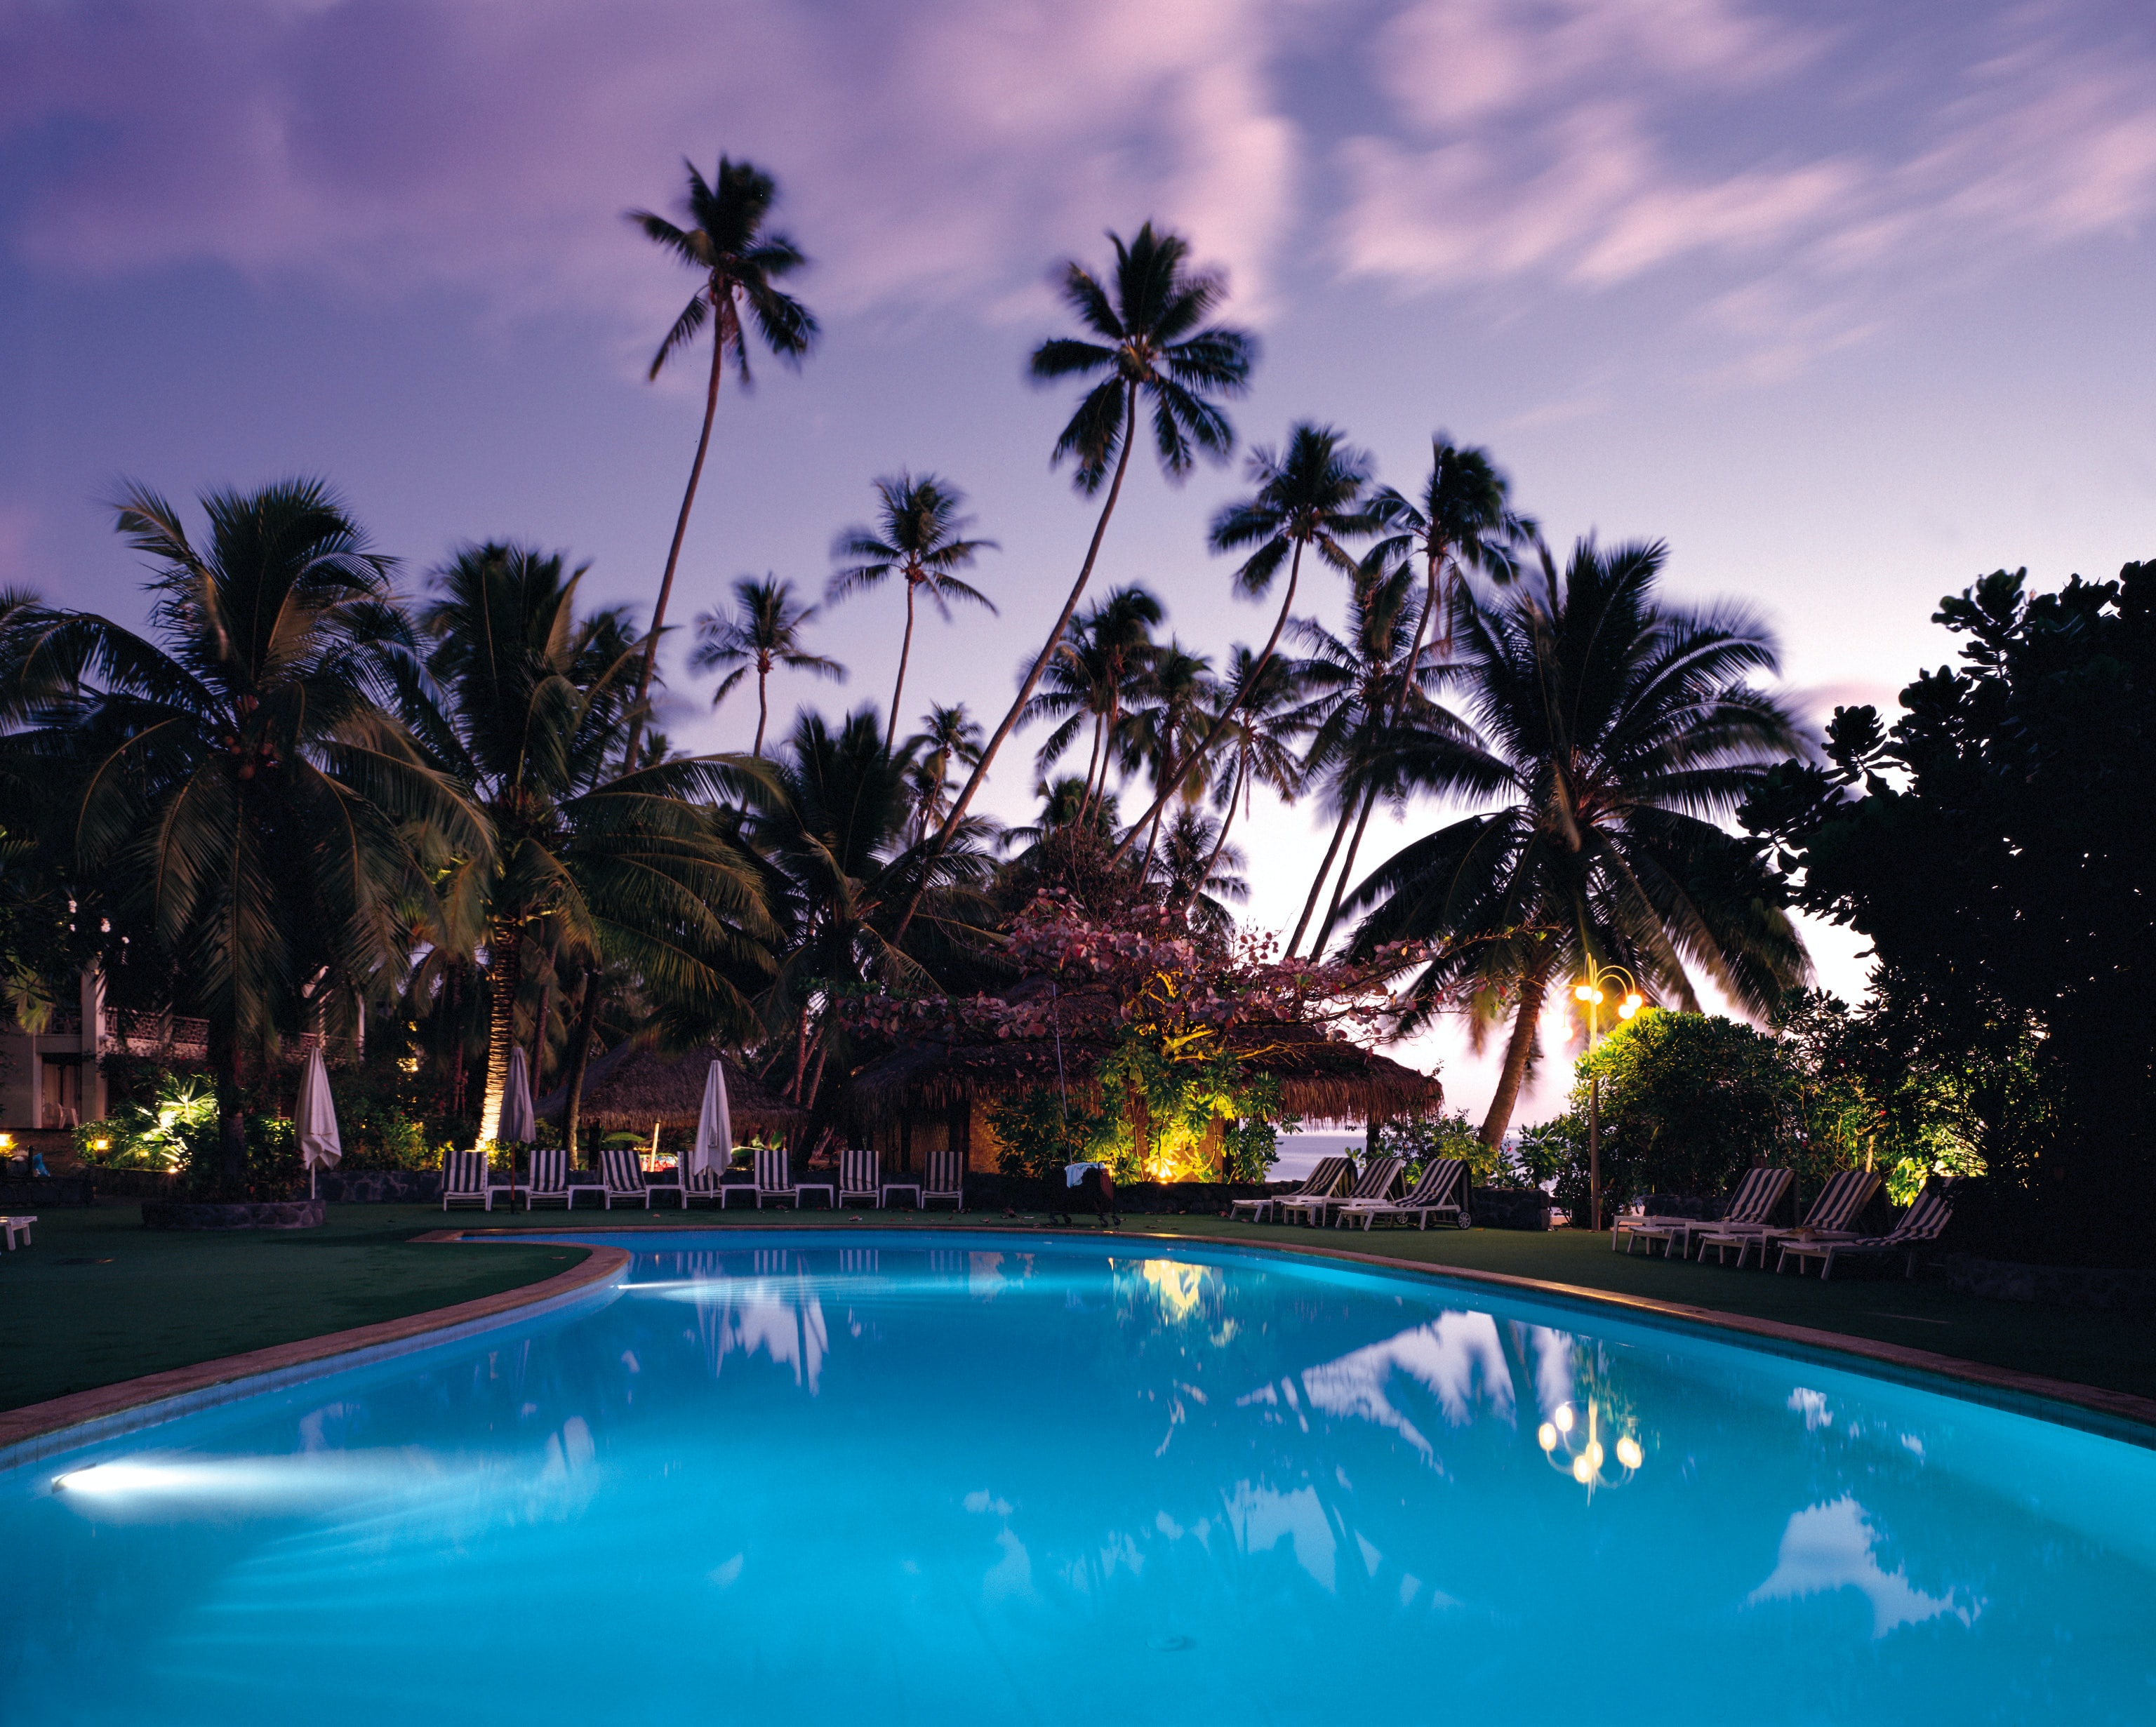 Palm trees and deck chairs near a blue swimming pool at sunset